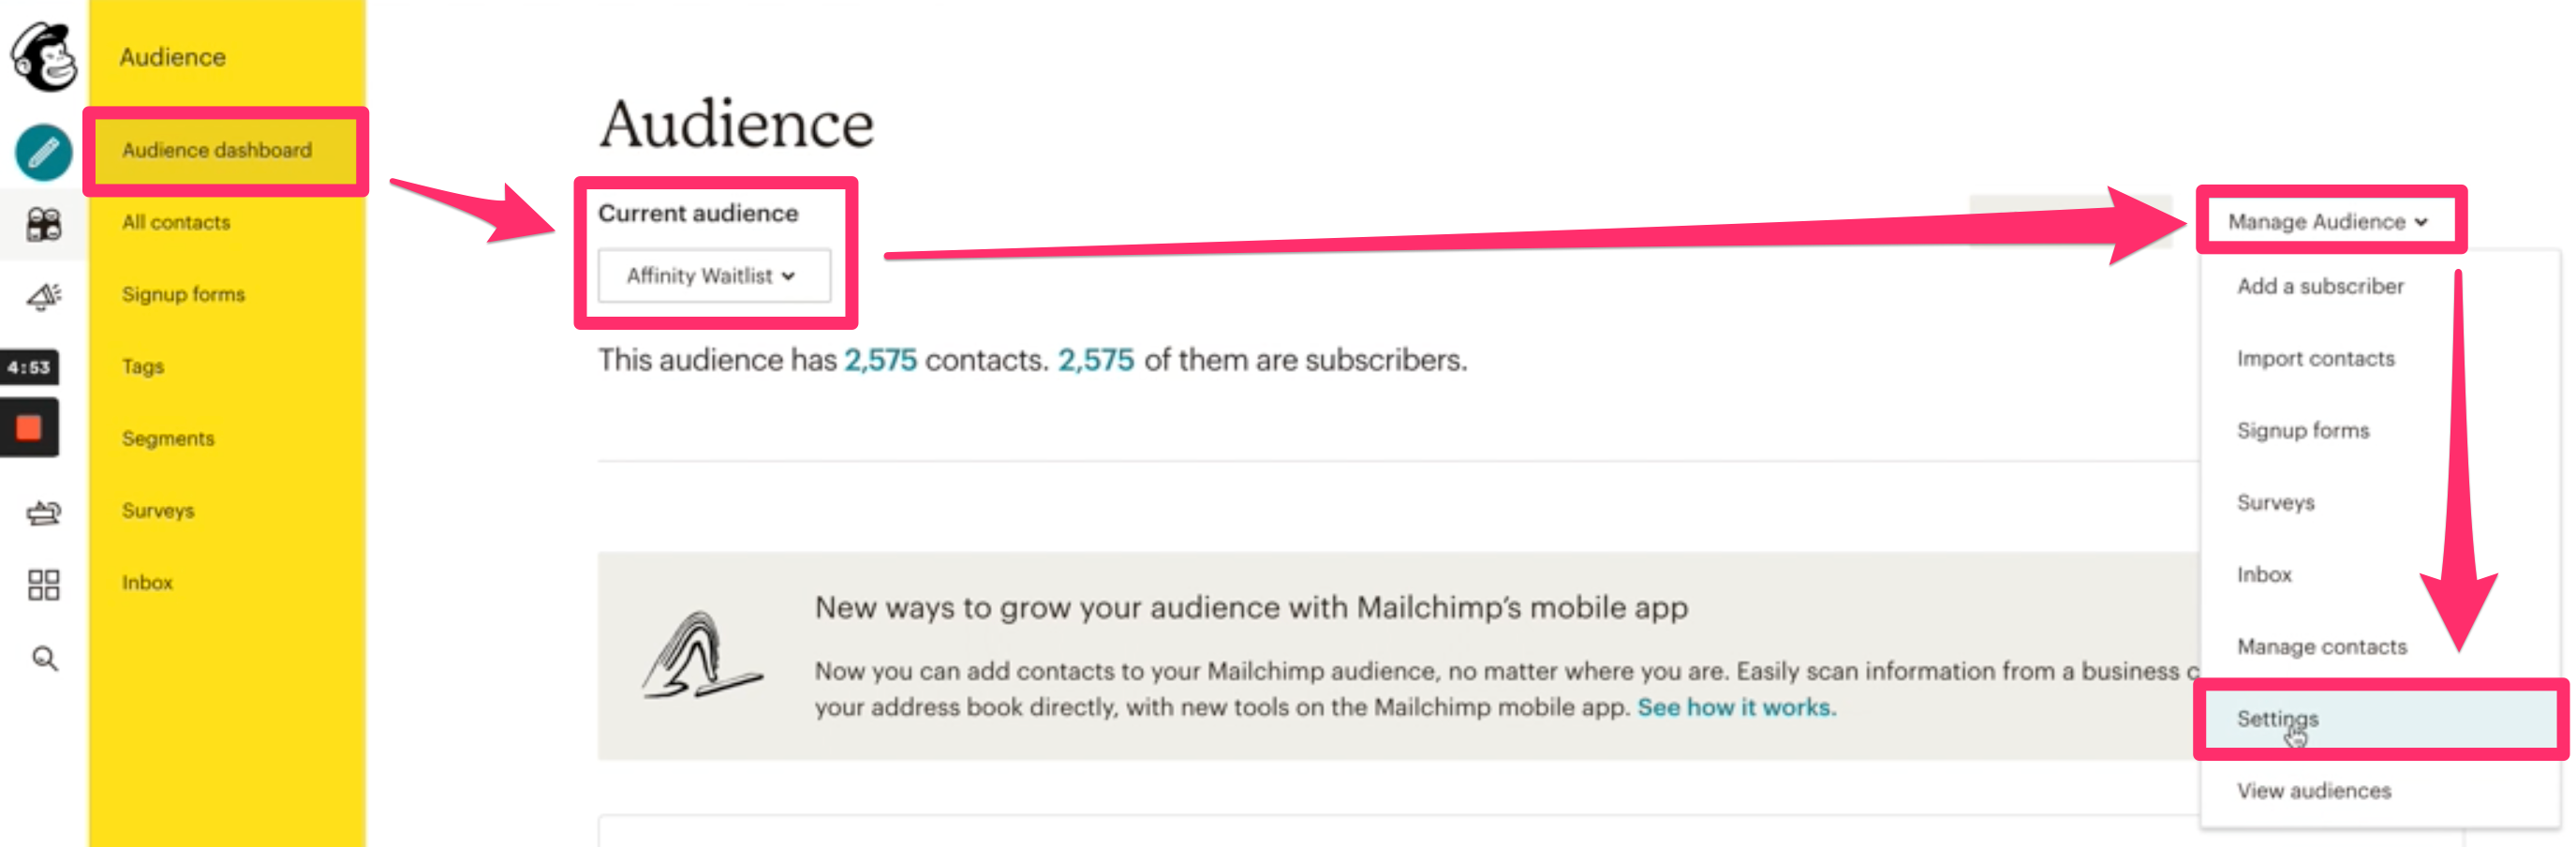 Mailchimp_Audience_Settings.png